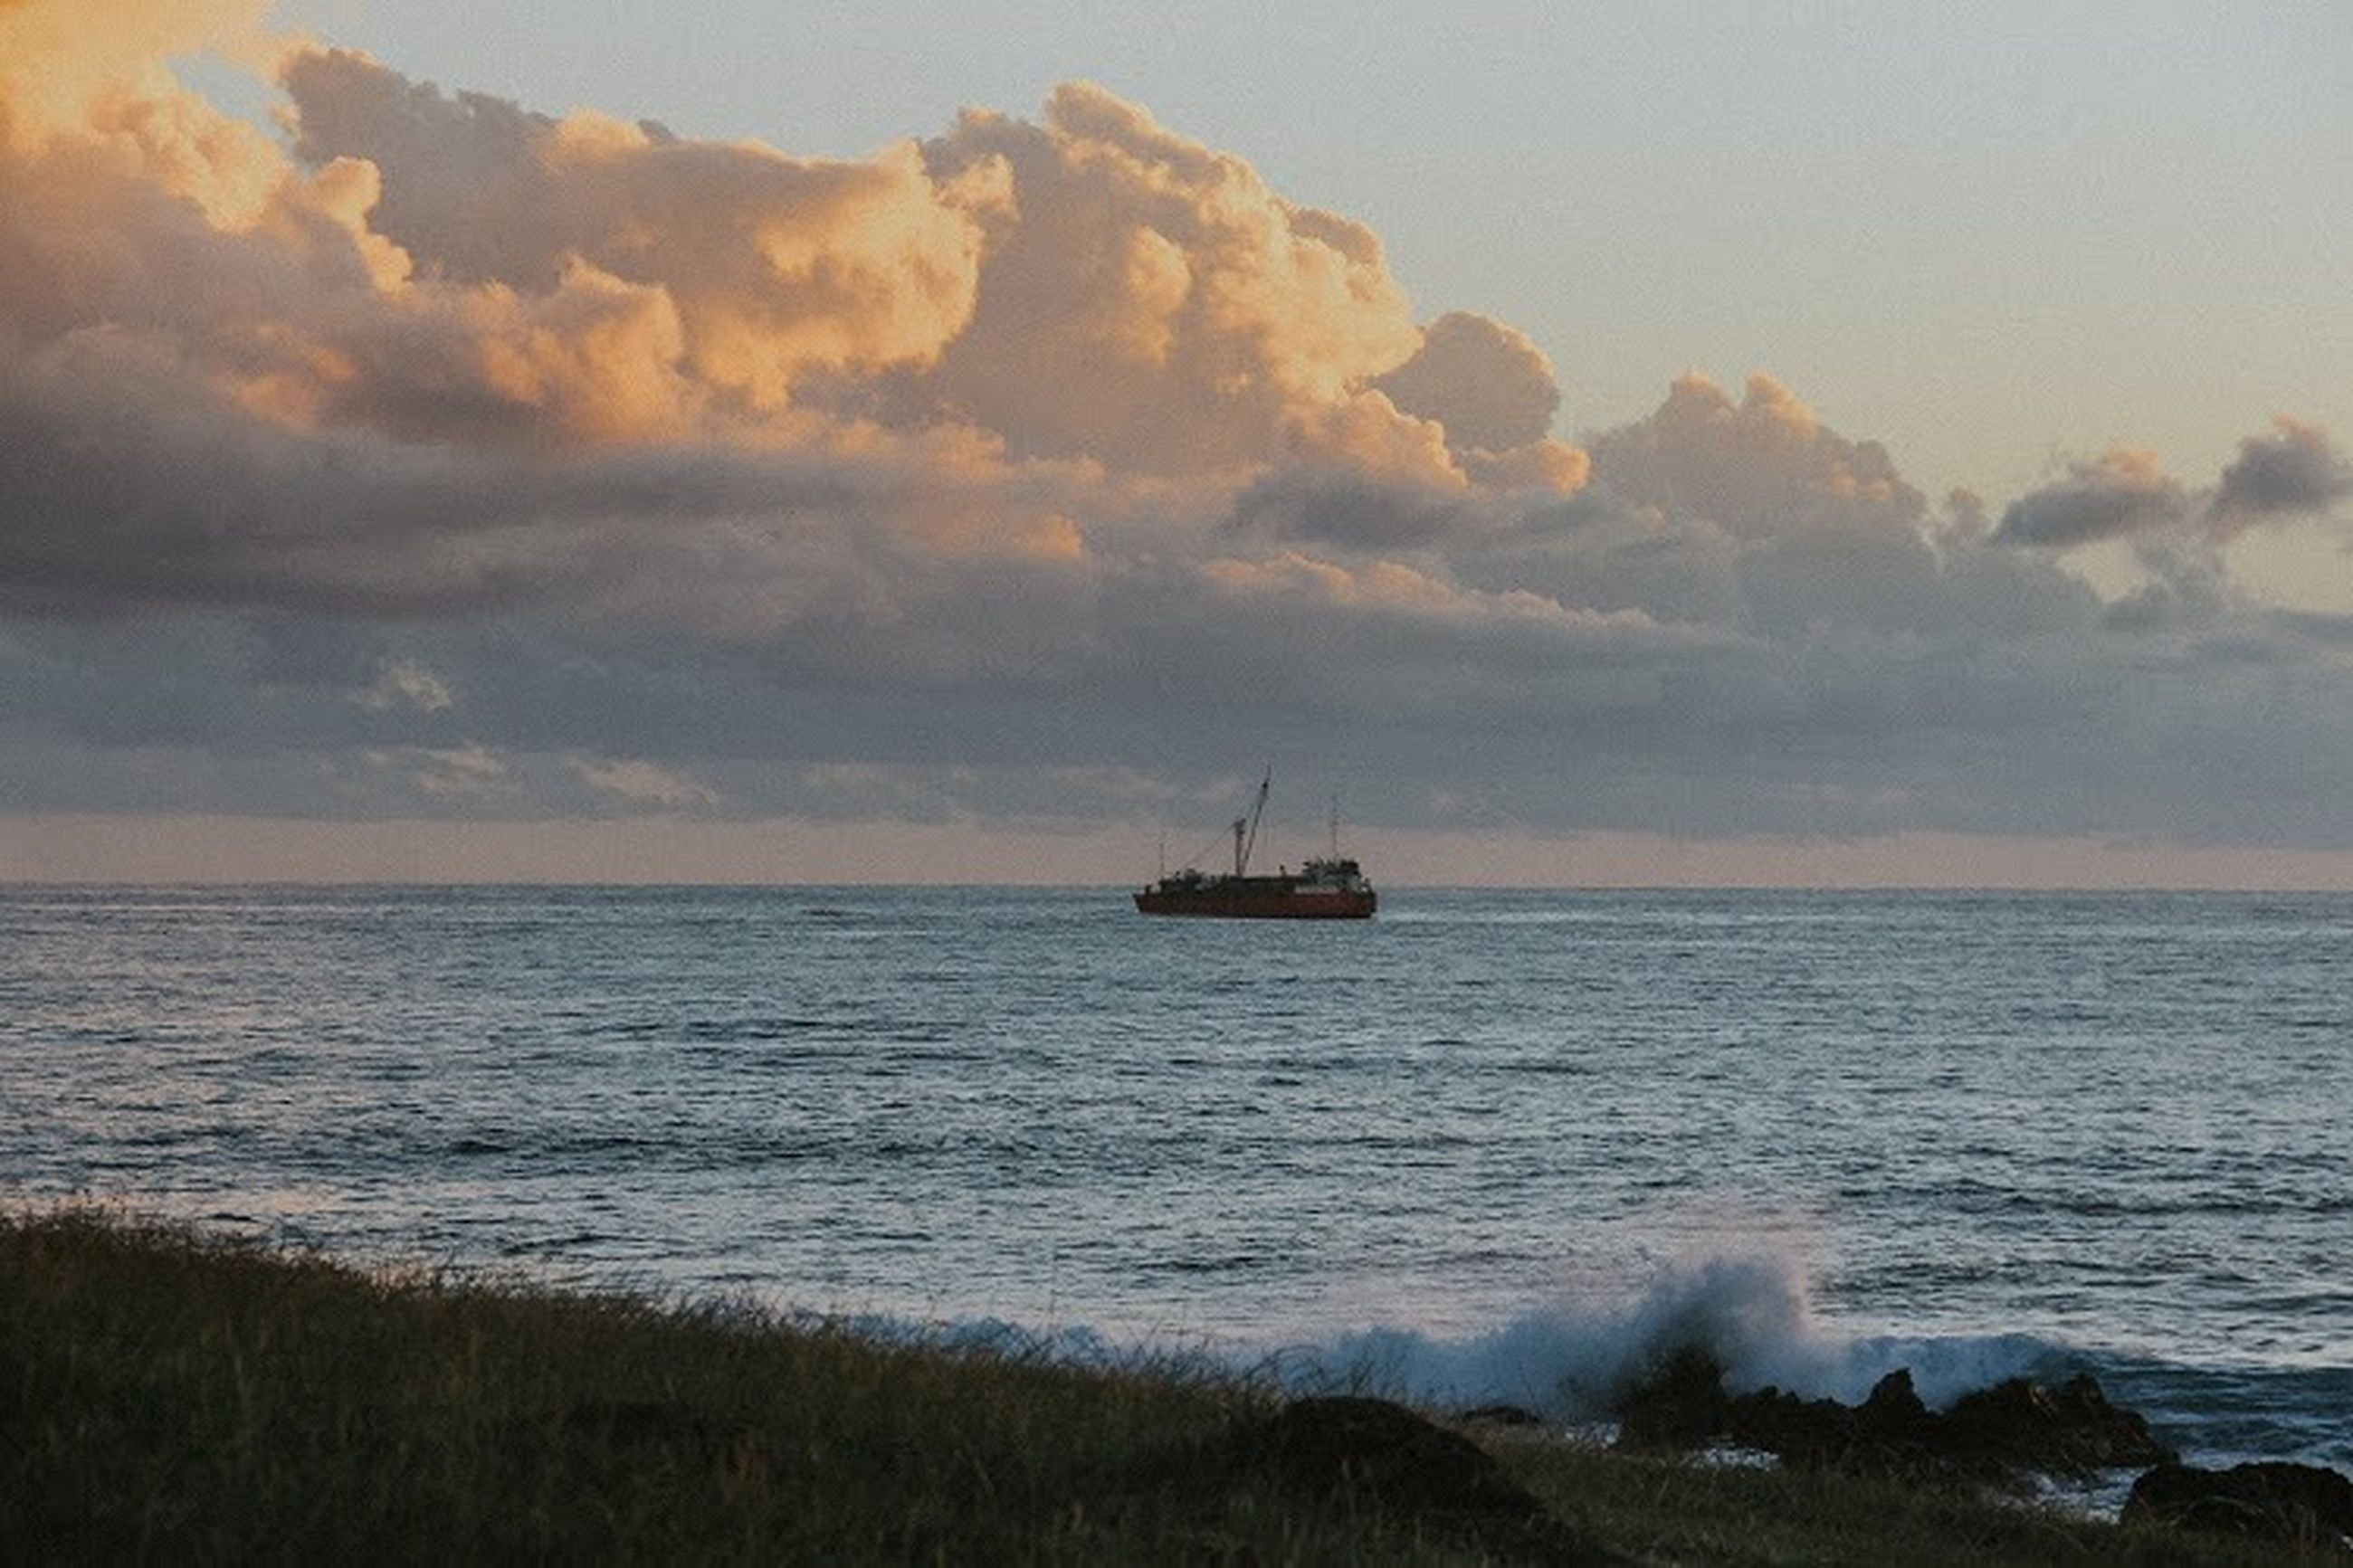 sea, water, sky, cloud - sky, nautical vessel, horizon over water, horizon, transportation, beauty in nature, scenics - nature, sunset, nature, mode of transportation, ship, no people, land, beach, tranquil scene, tranquility, outdoors, sailboat